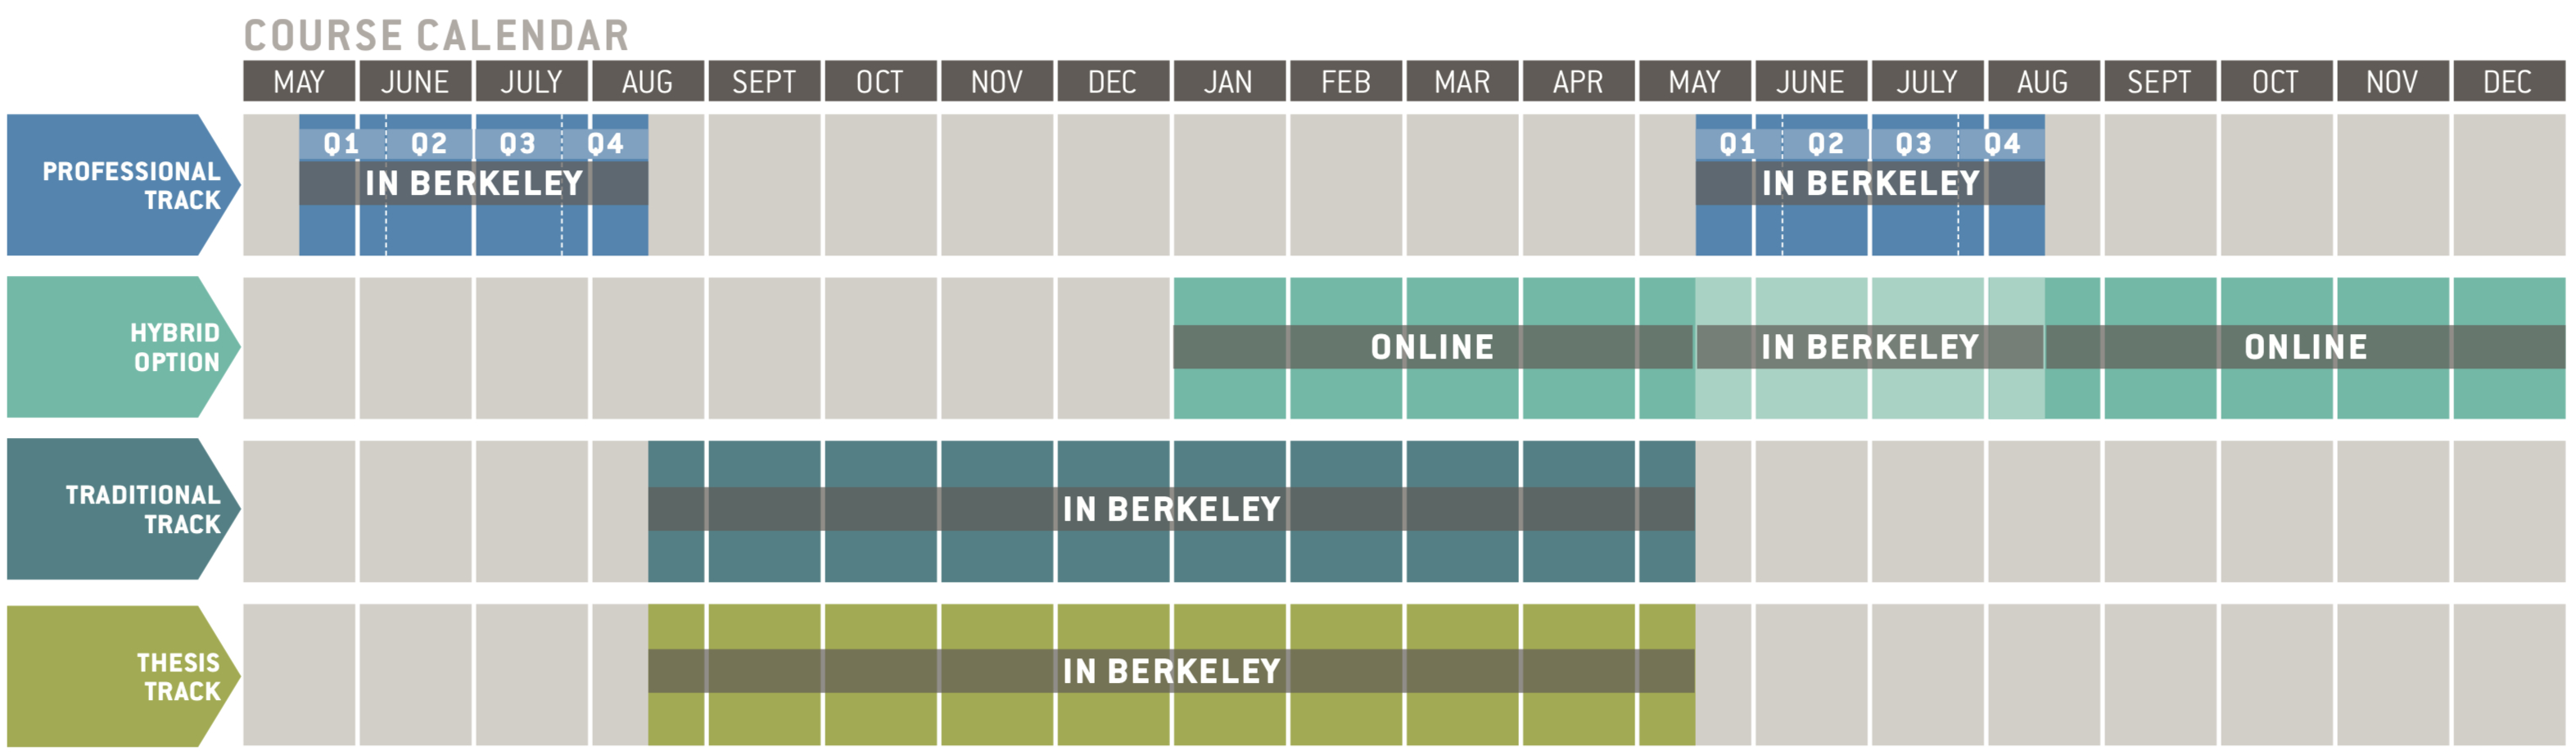 Ll.m. Programs | Berkeley Law intended for Berkeley Law Academic Calendar